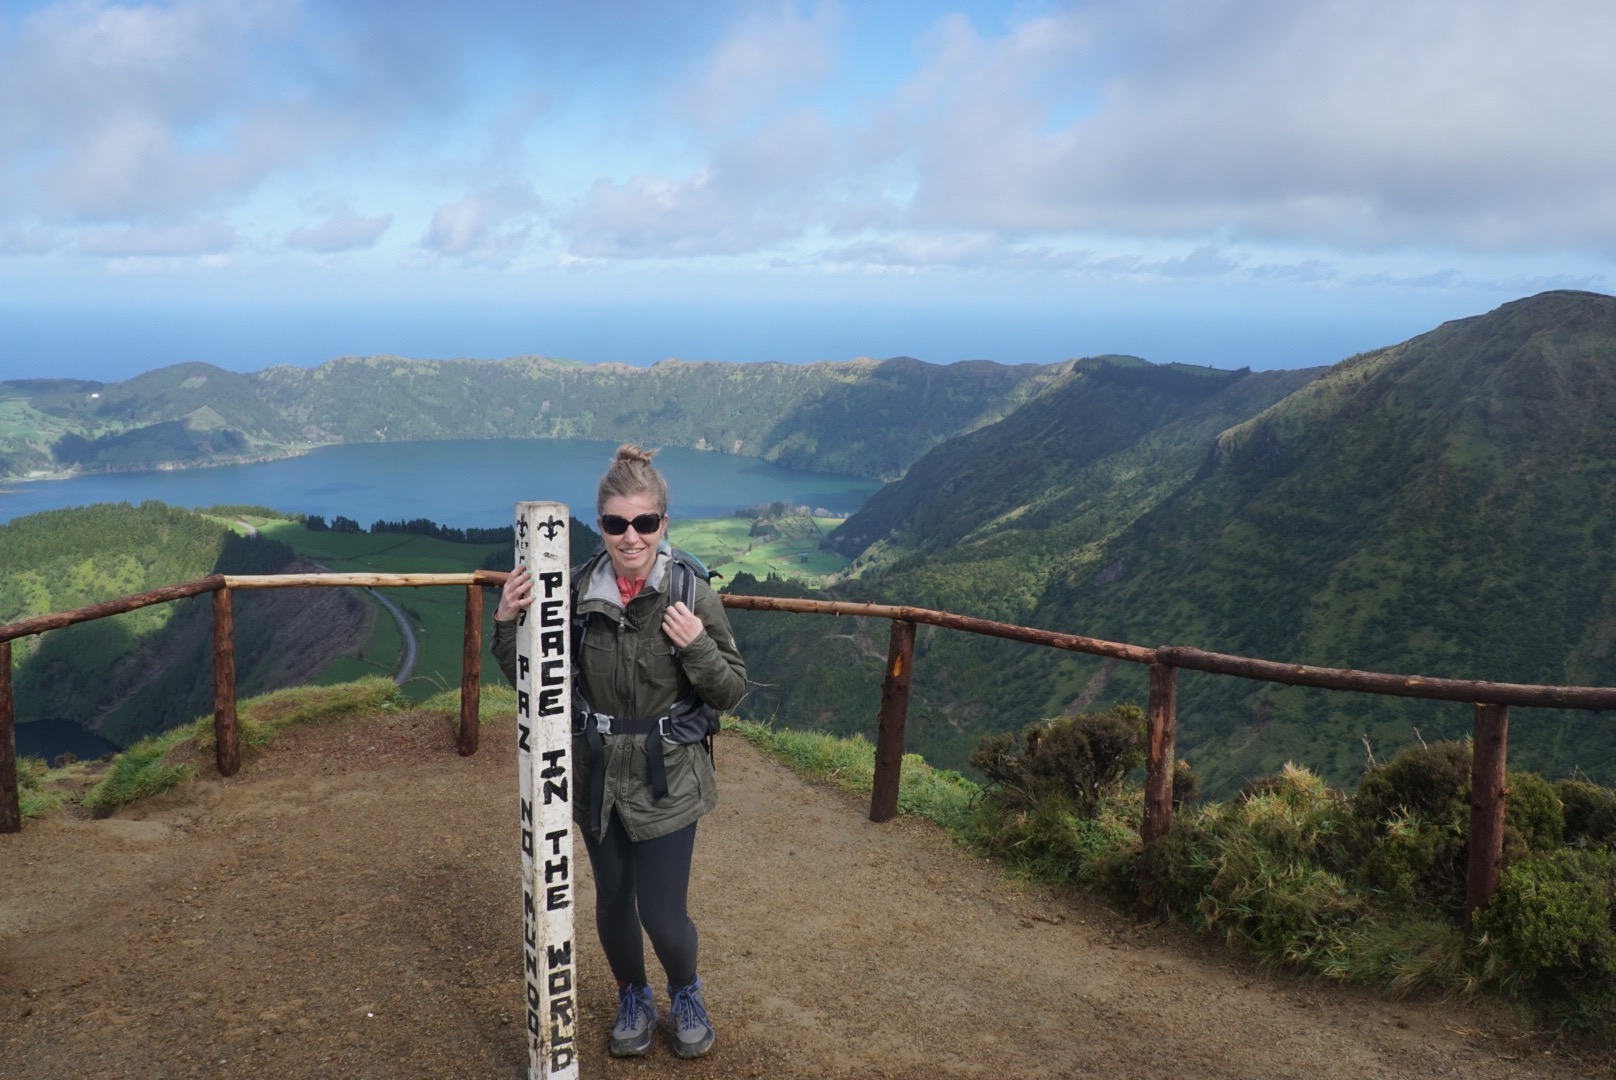 Azores Islands, Trip Report: Azores Islands